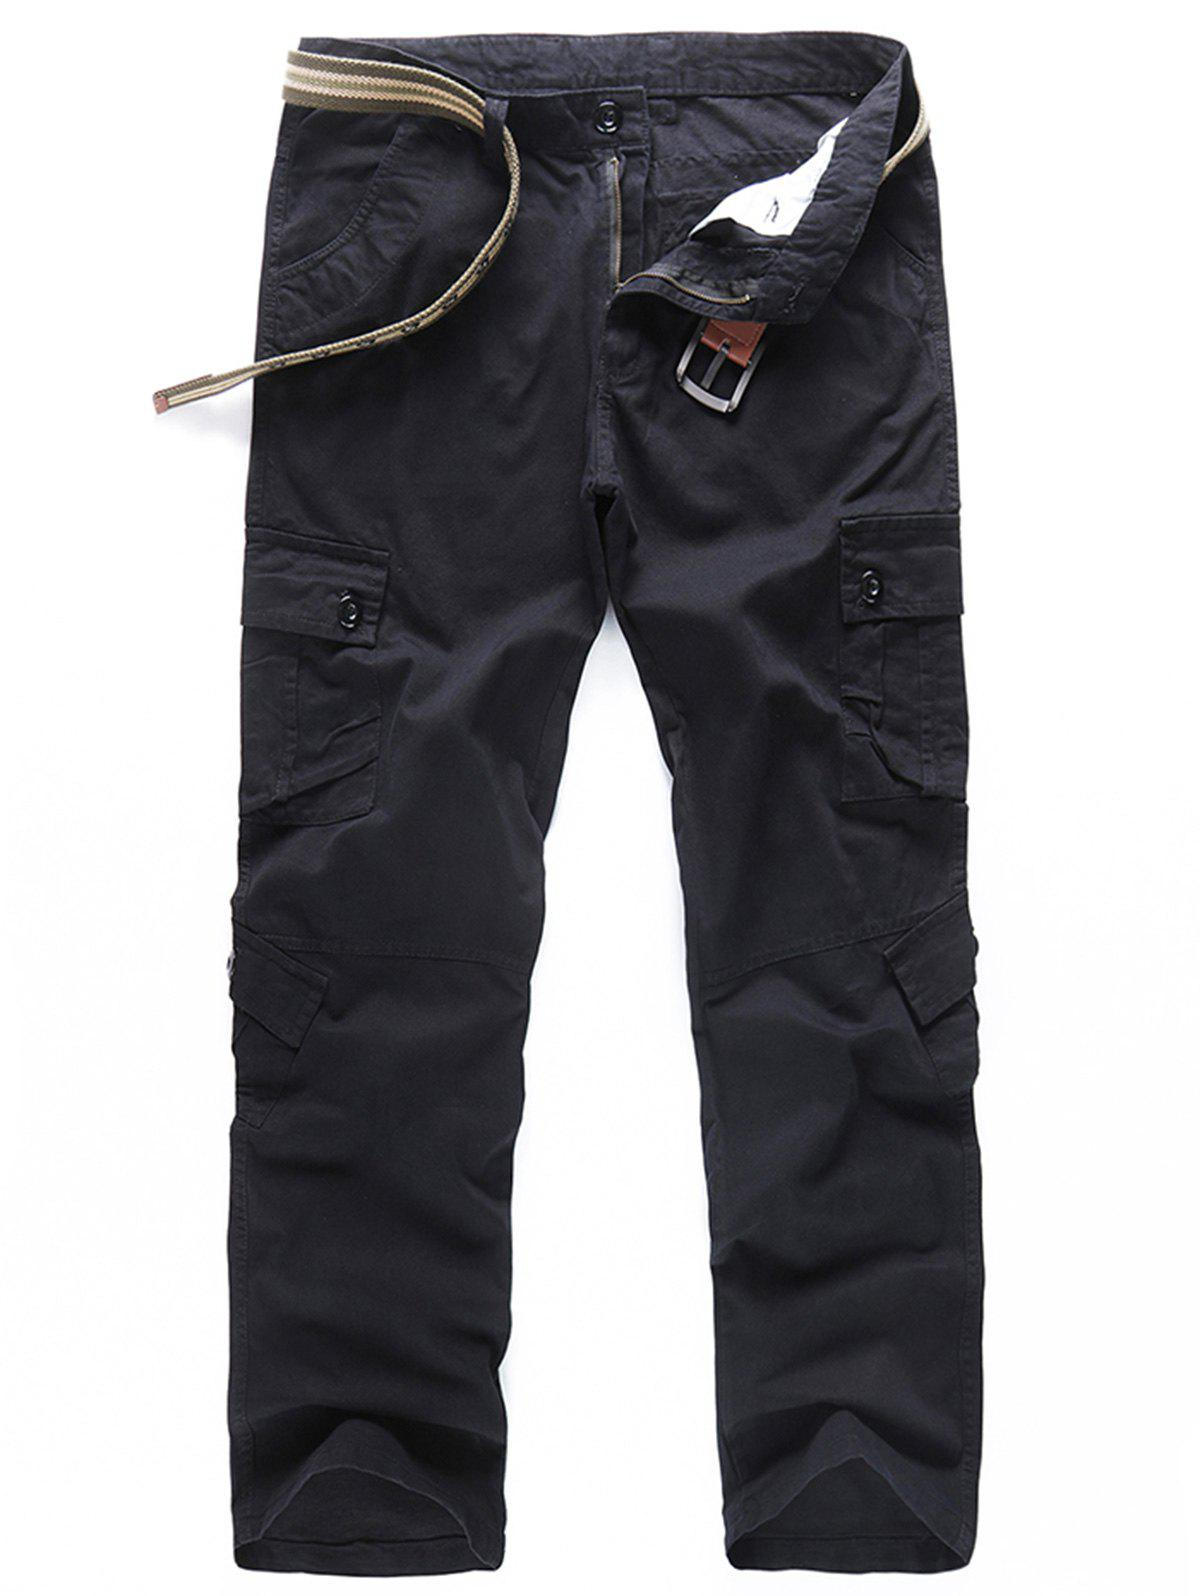 Fancy Casual Solid Color Pockets Design Cargo Pants